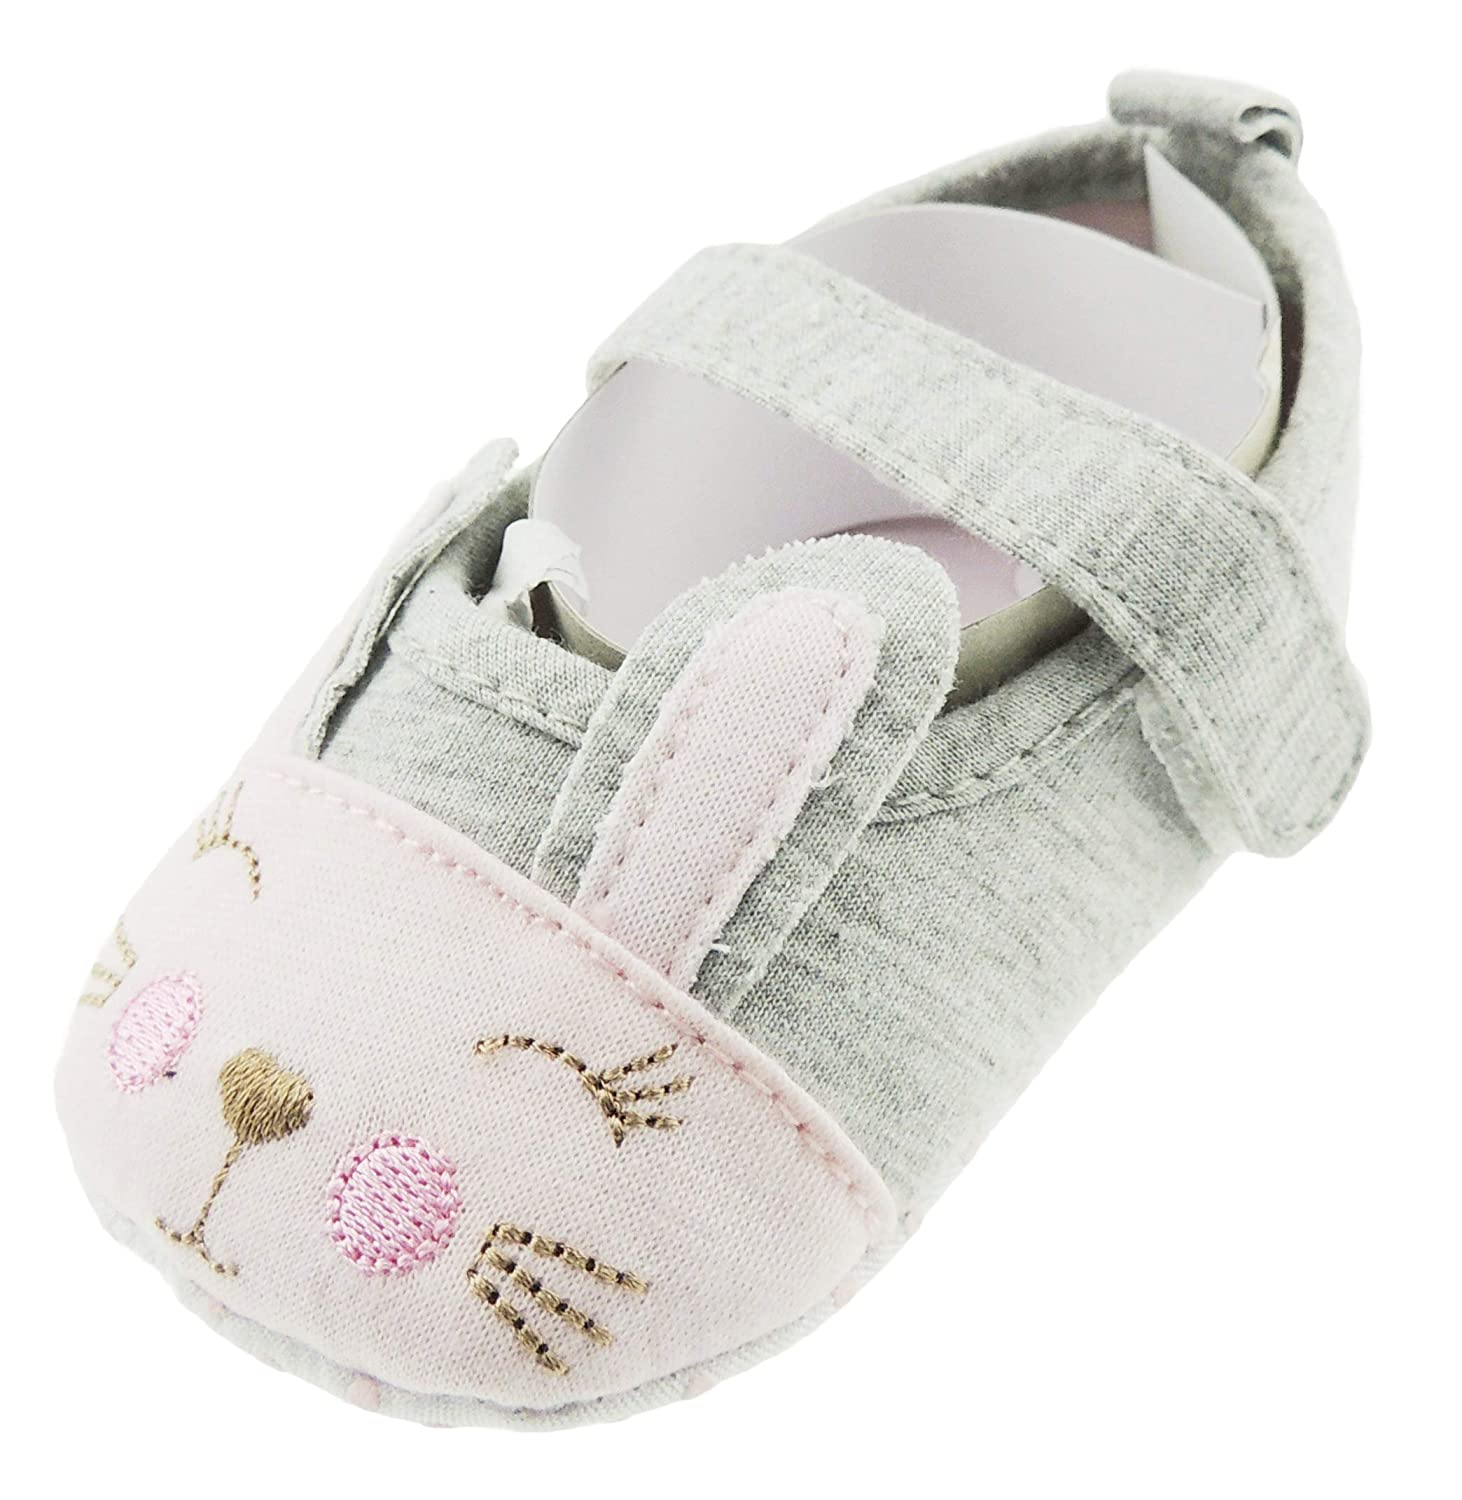 Grey White, 3-6 Months 12 Baby Girls Animal Strap Summer First Walker Cotton Shoes Sandals Heart Nose Bunny